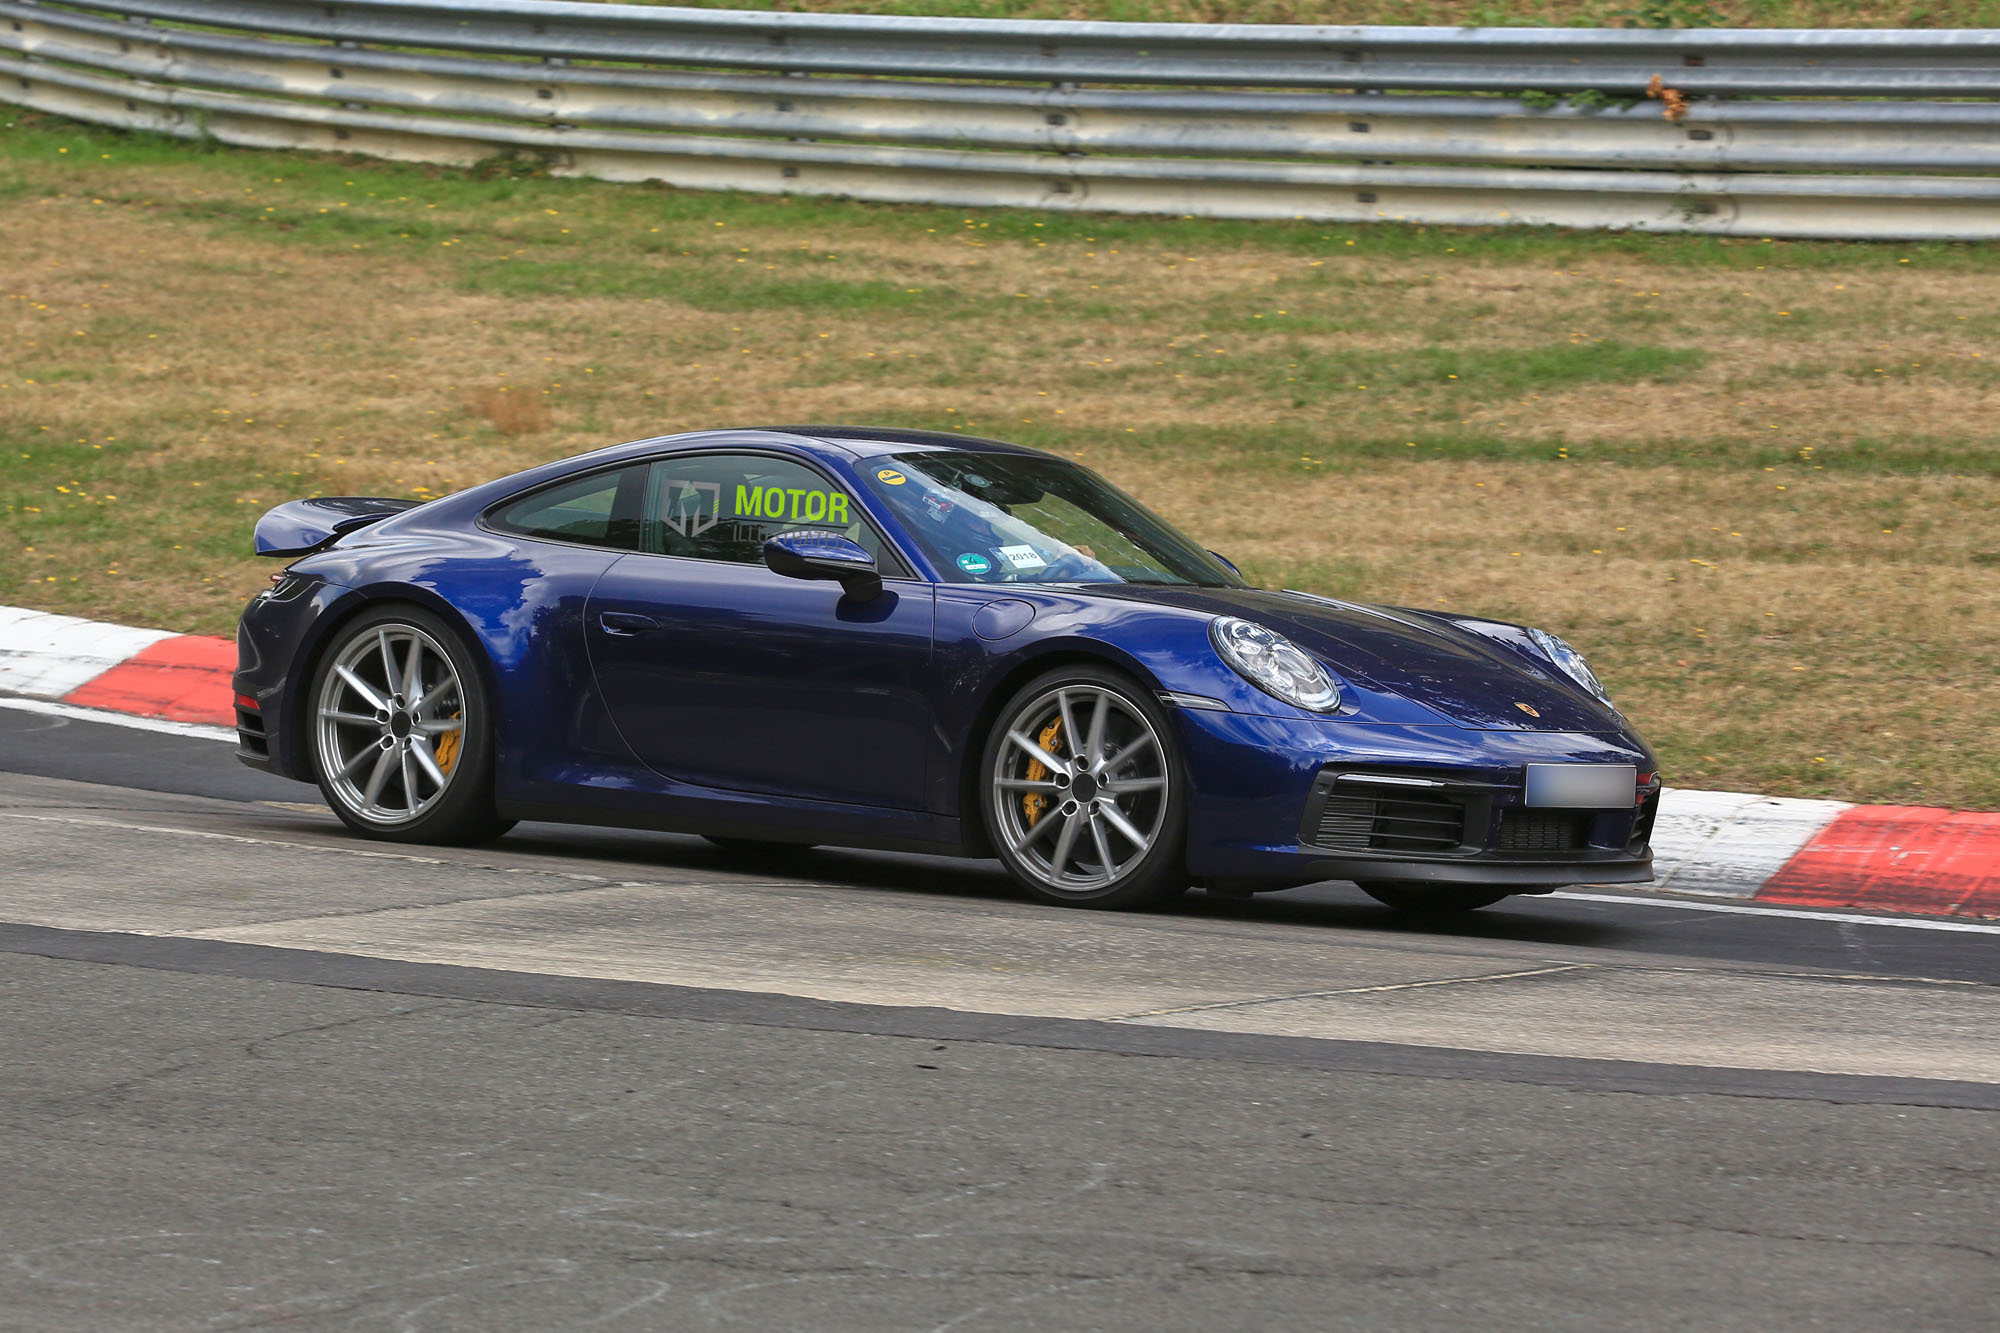 Here's the new 2019 Porsche 911 992 - Motor Illustrated